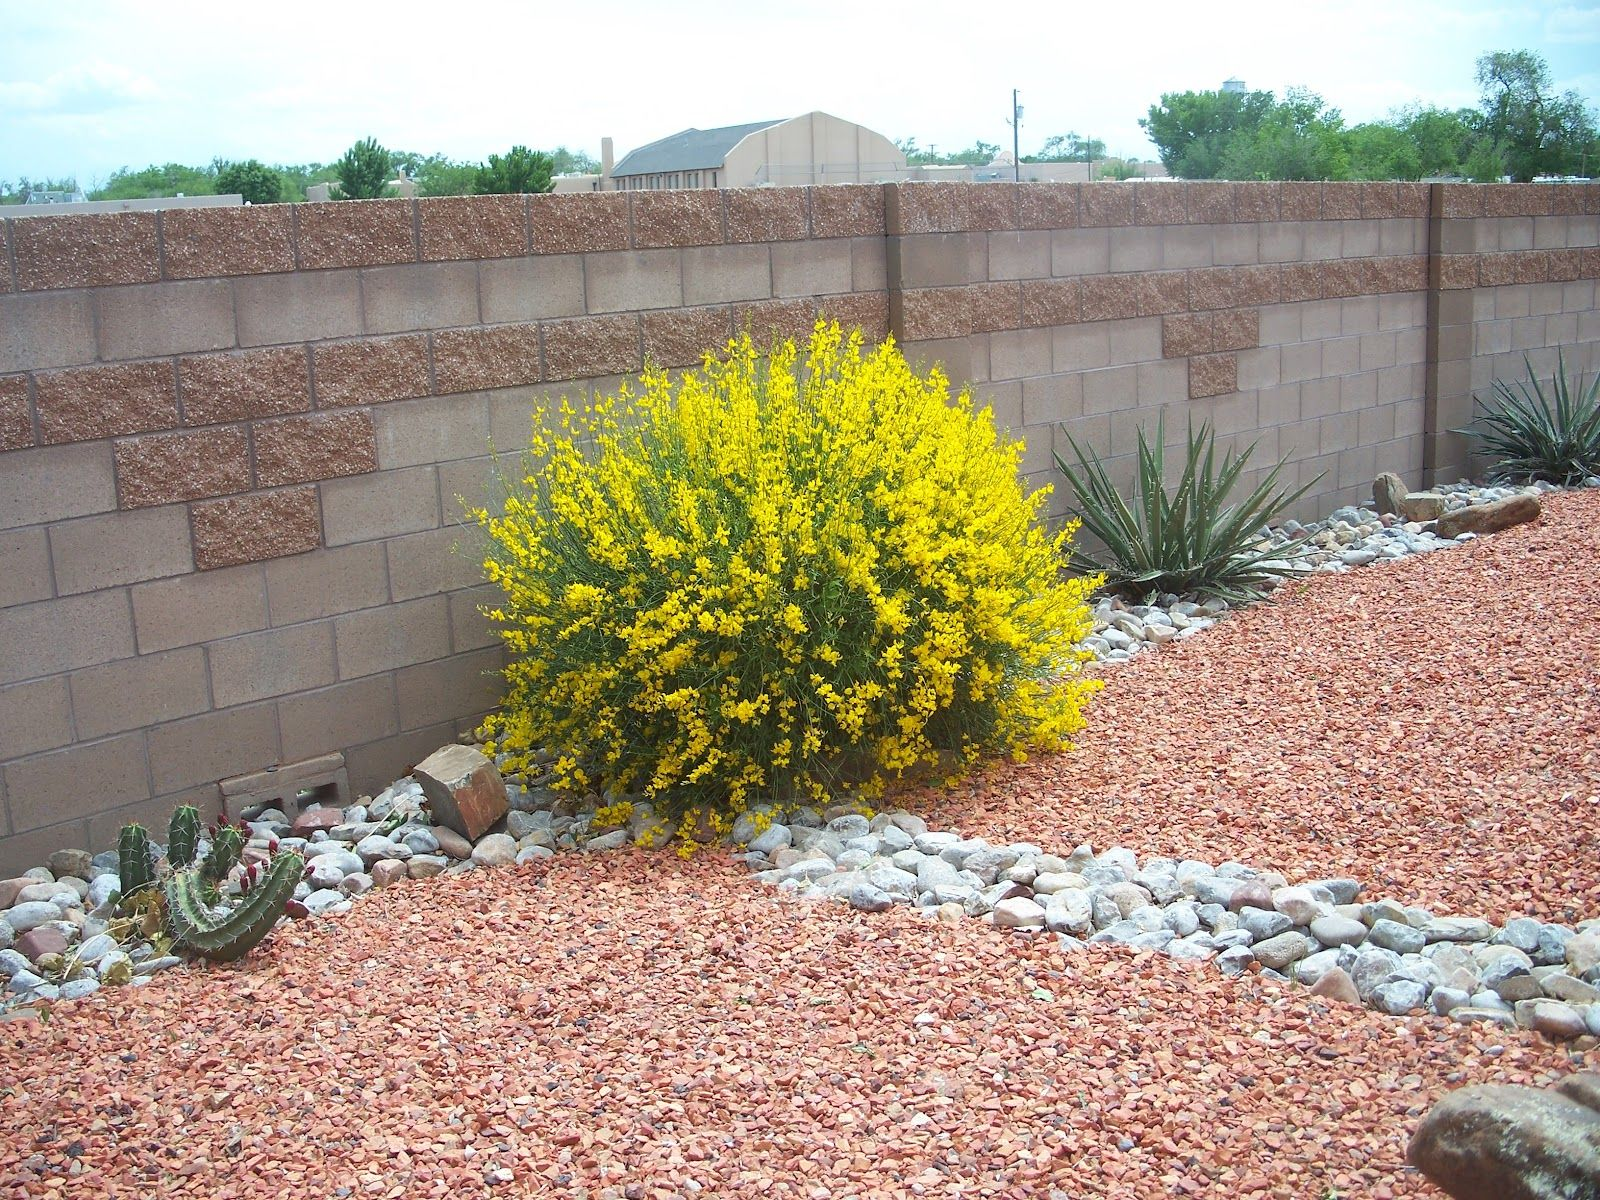 Trees That Please Nursery Spanish Broom Spanish Broom Broom Plant Plants